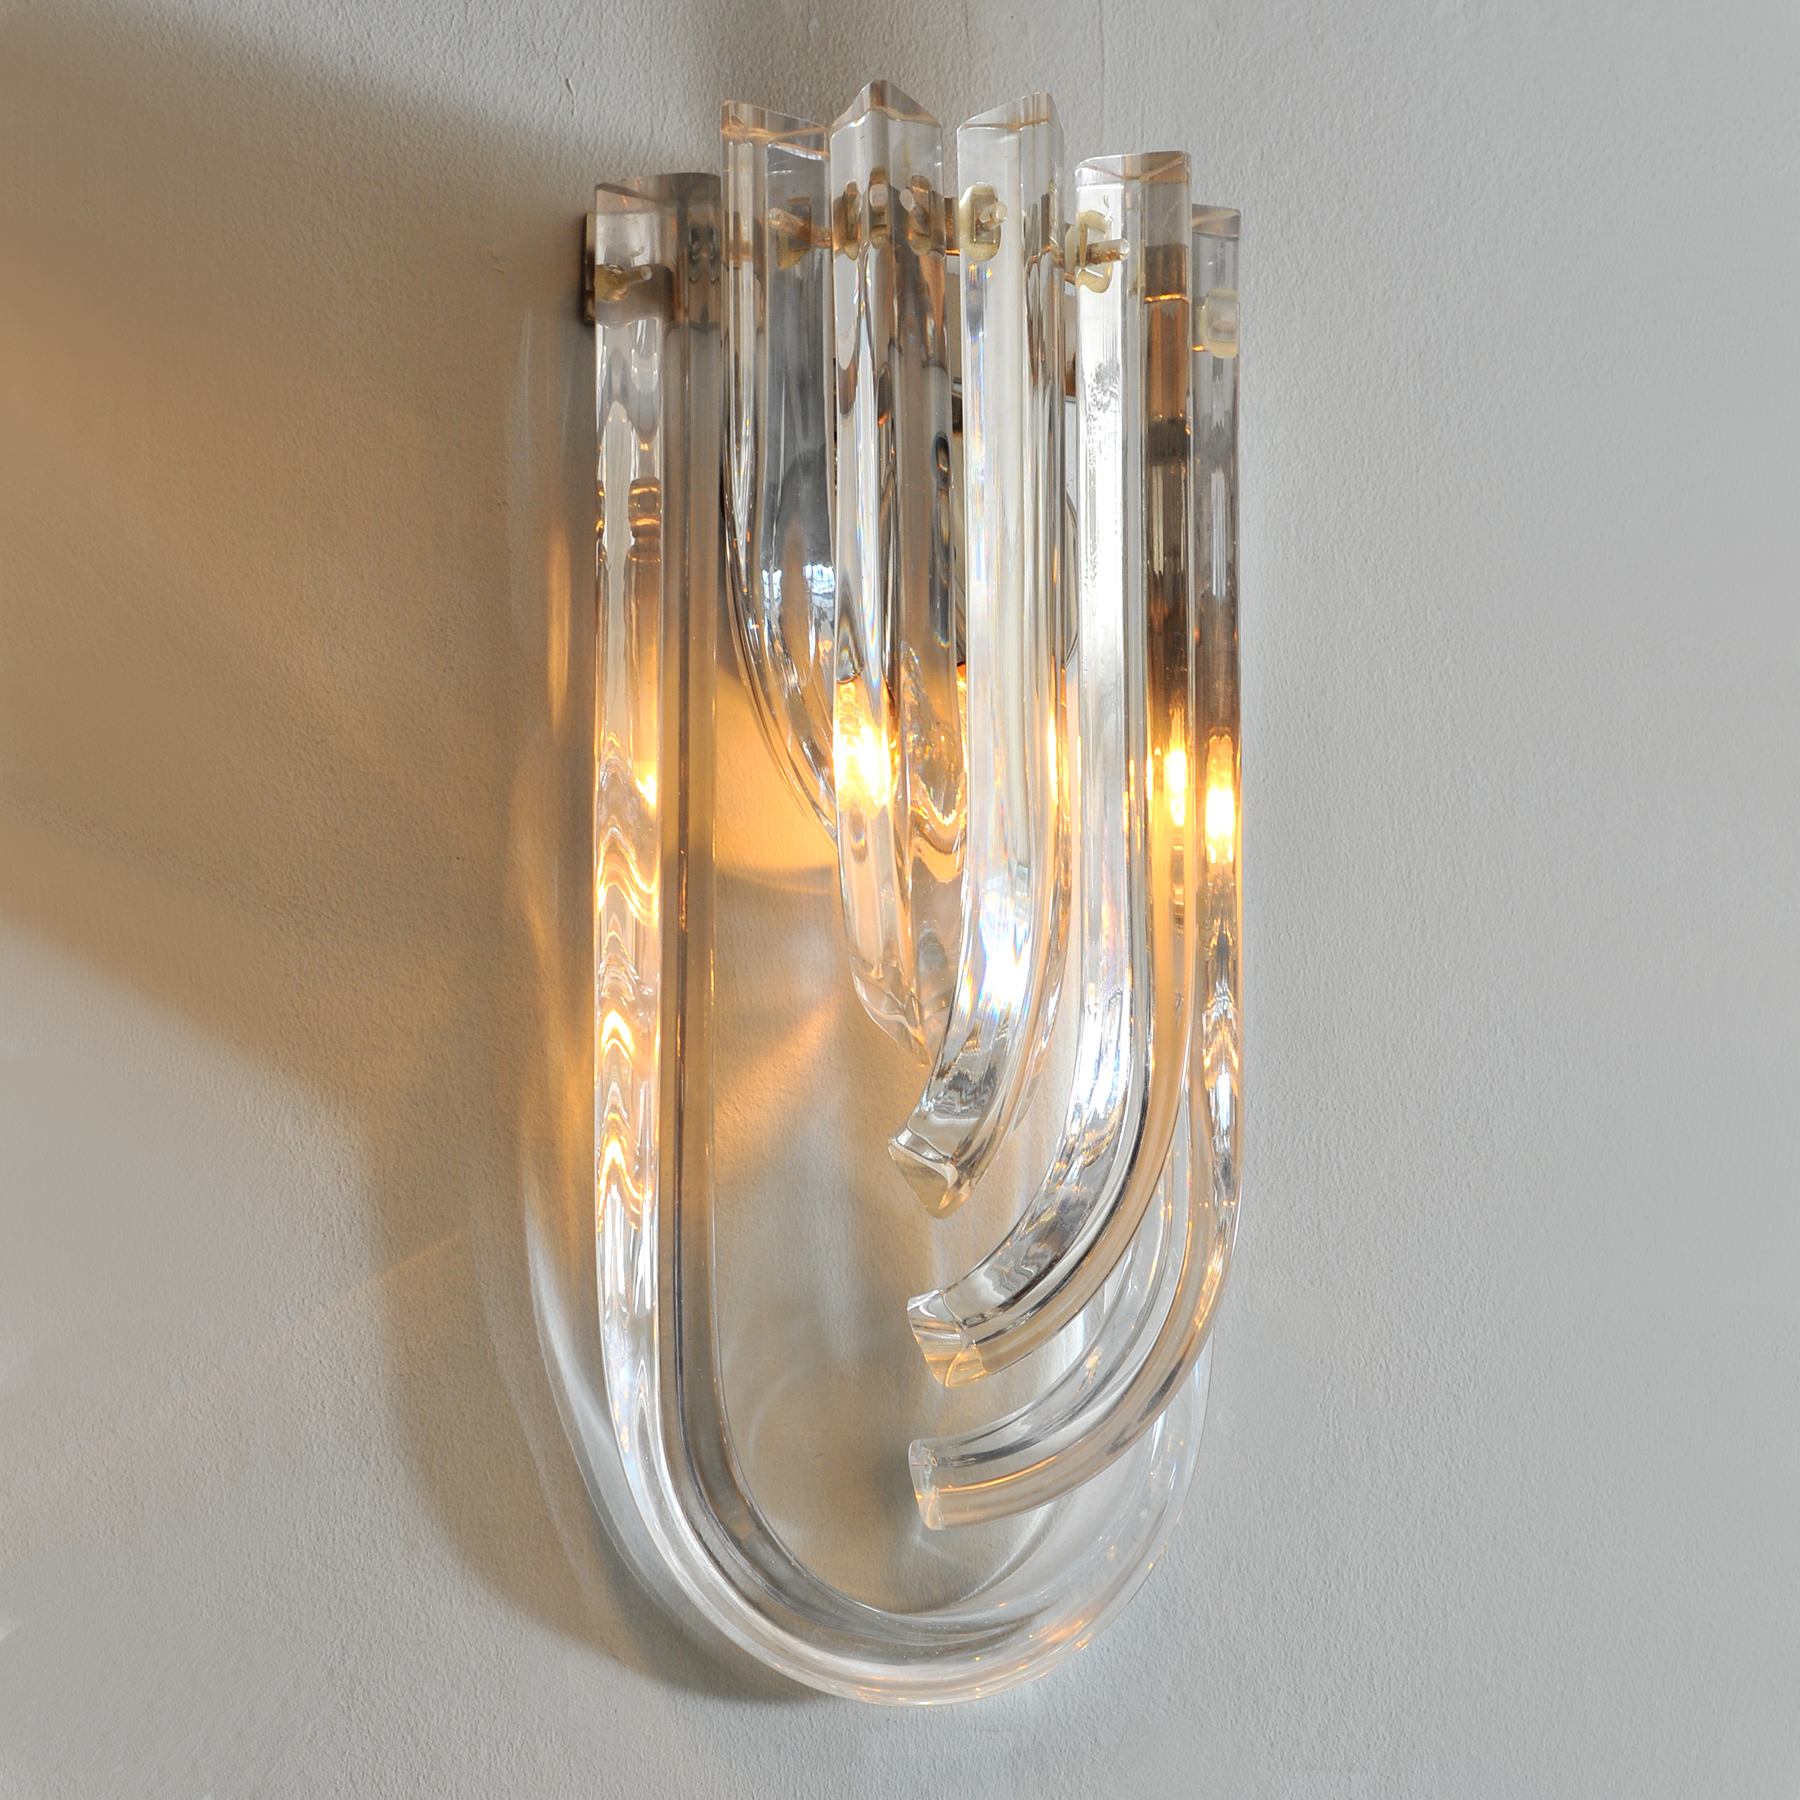 The image for Curve Wall Light 01